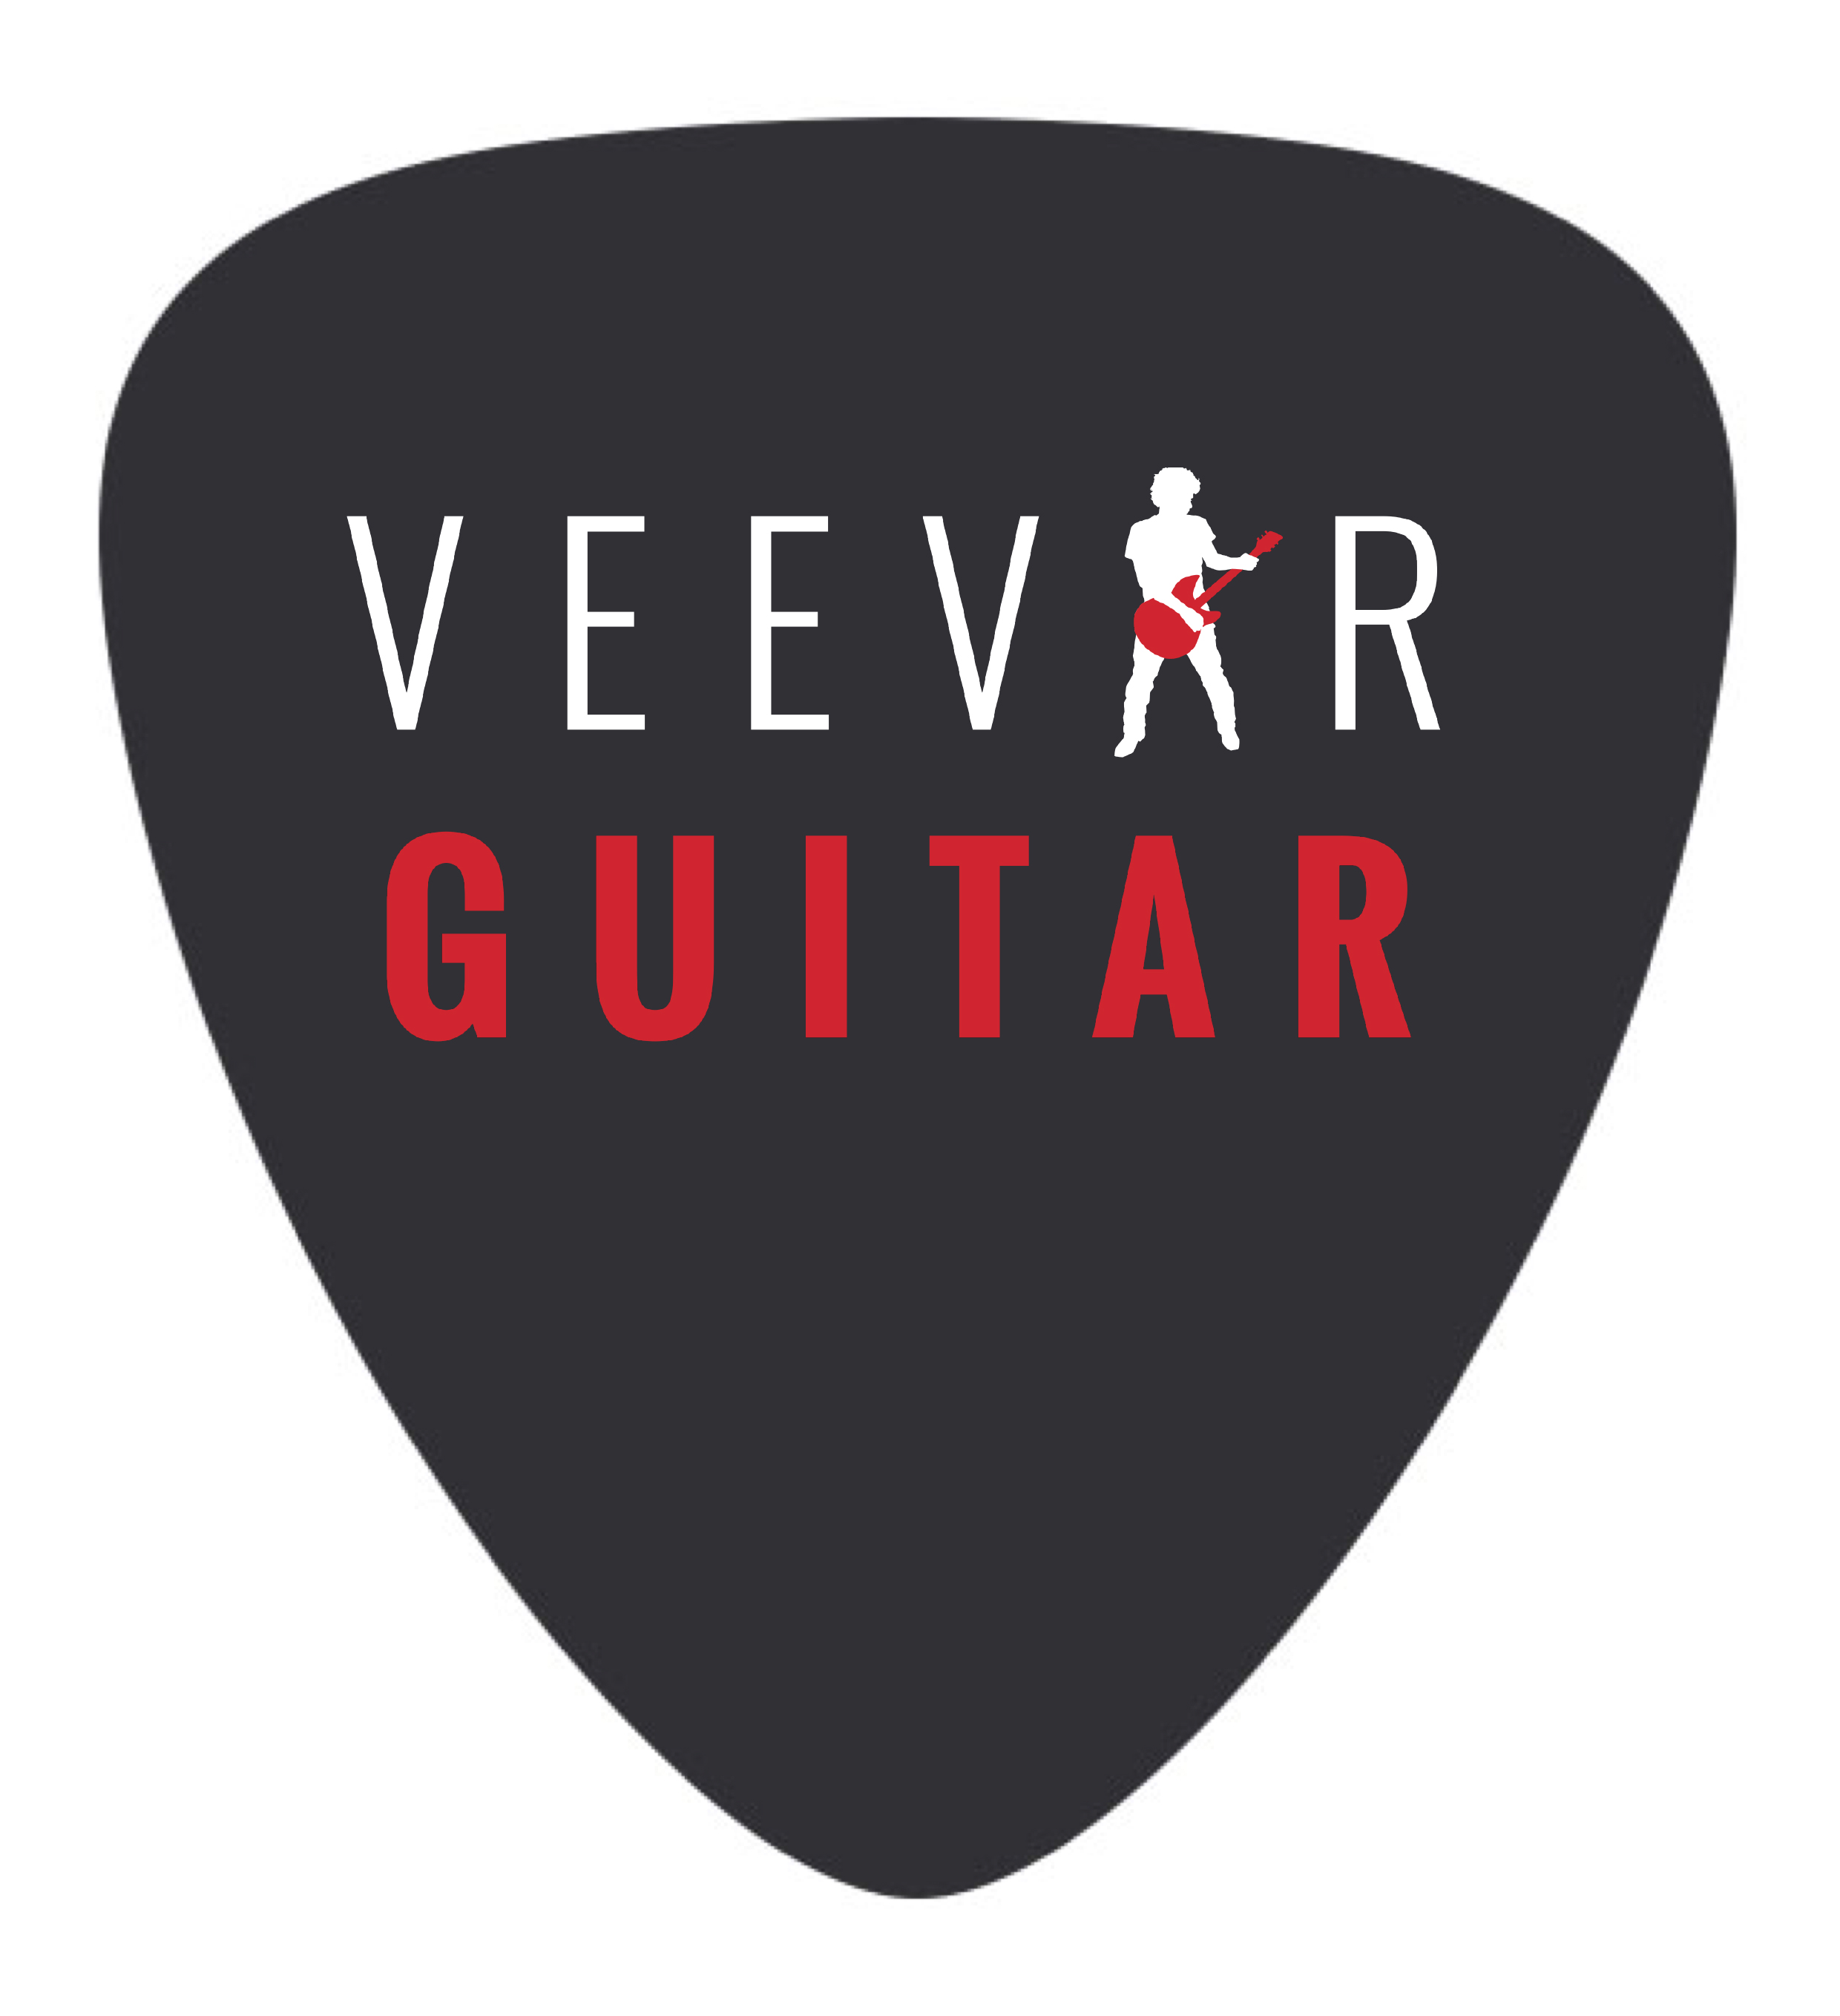 Veevar Guitar – A New Option for Guitar Students AND Teachers